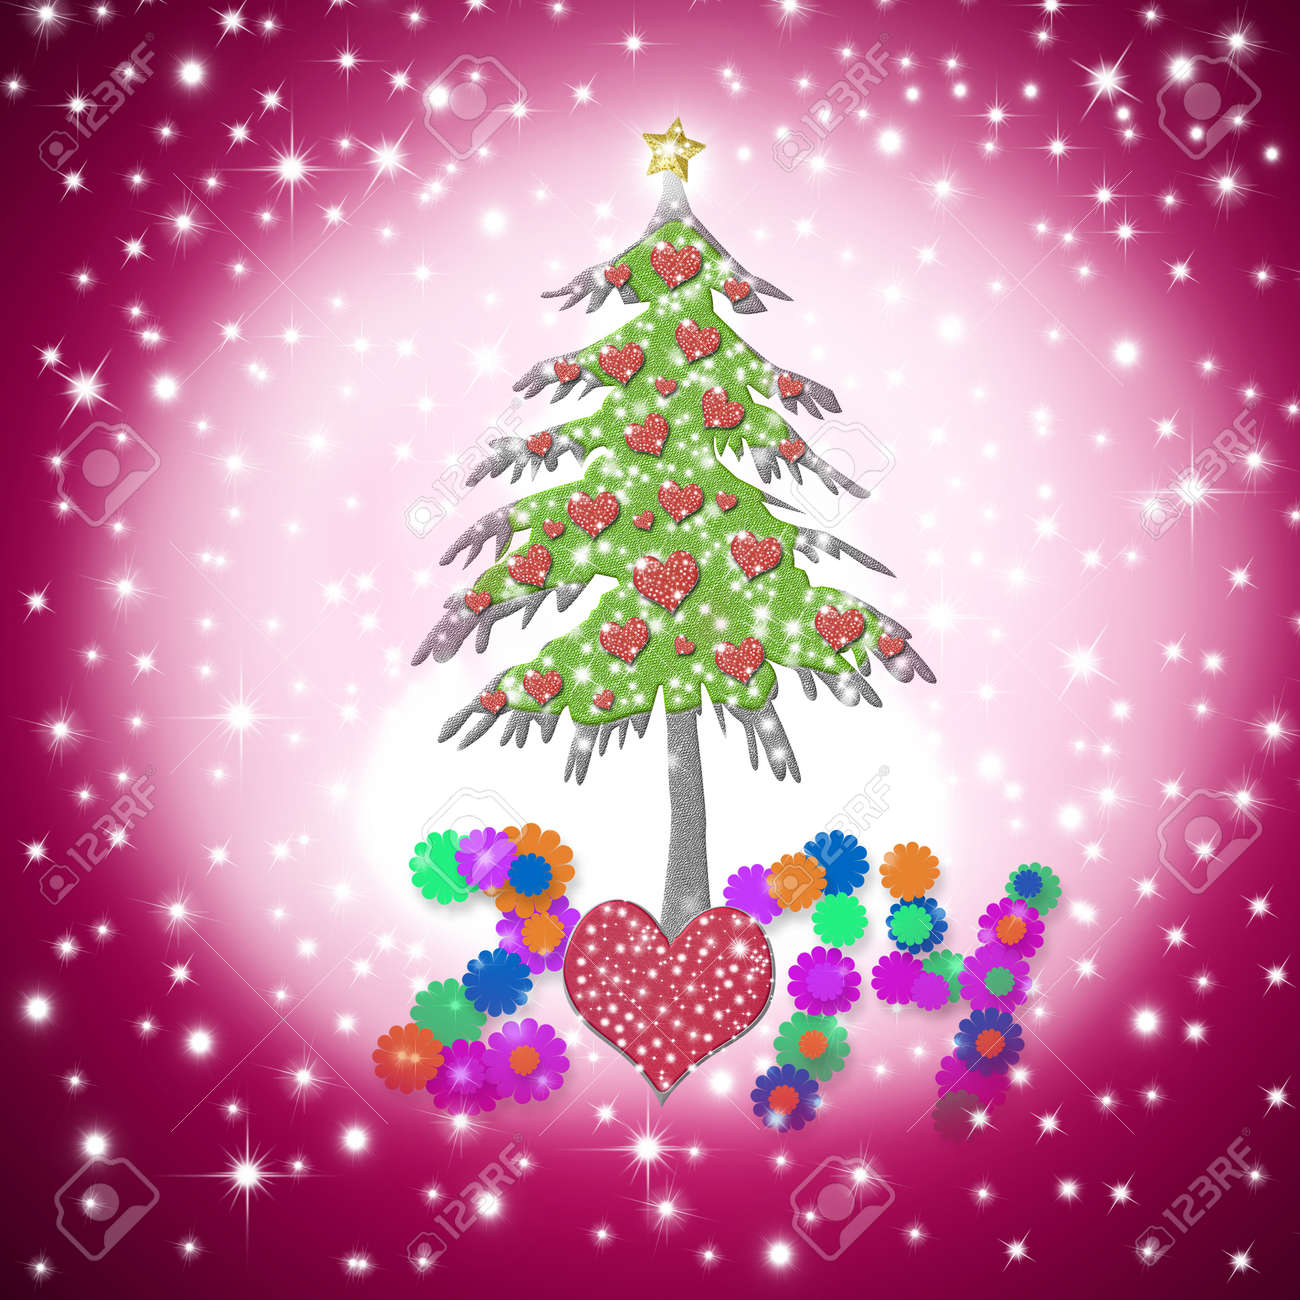 Lovely christmas greeting card 2014 with shiny hearts tree on lovely christmas greeting card 2014 with shiny hearts tree on starry pink sky background stock photo m4hsunfo Images